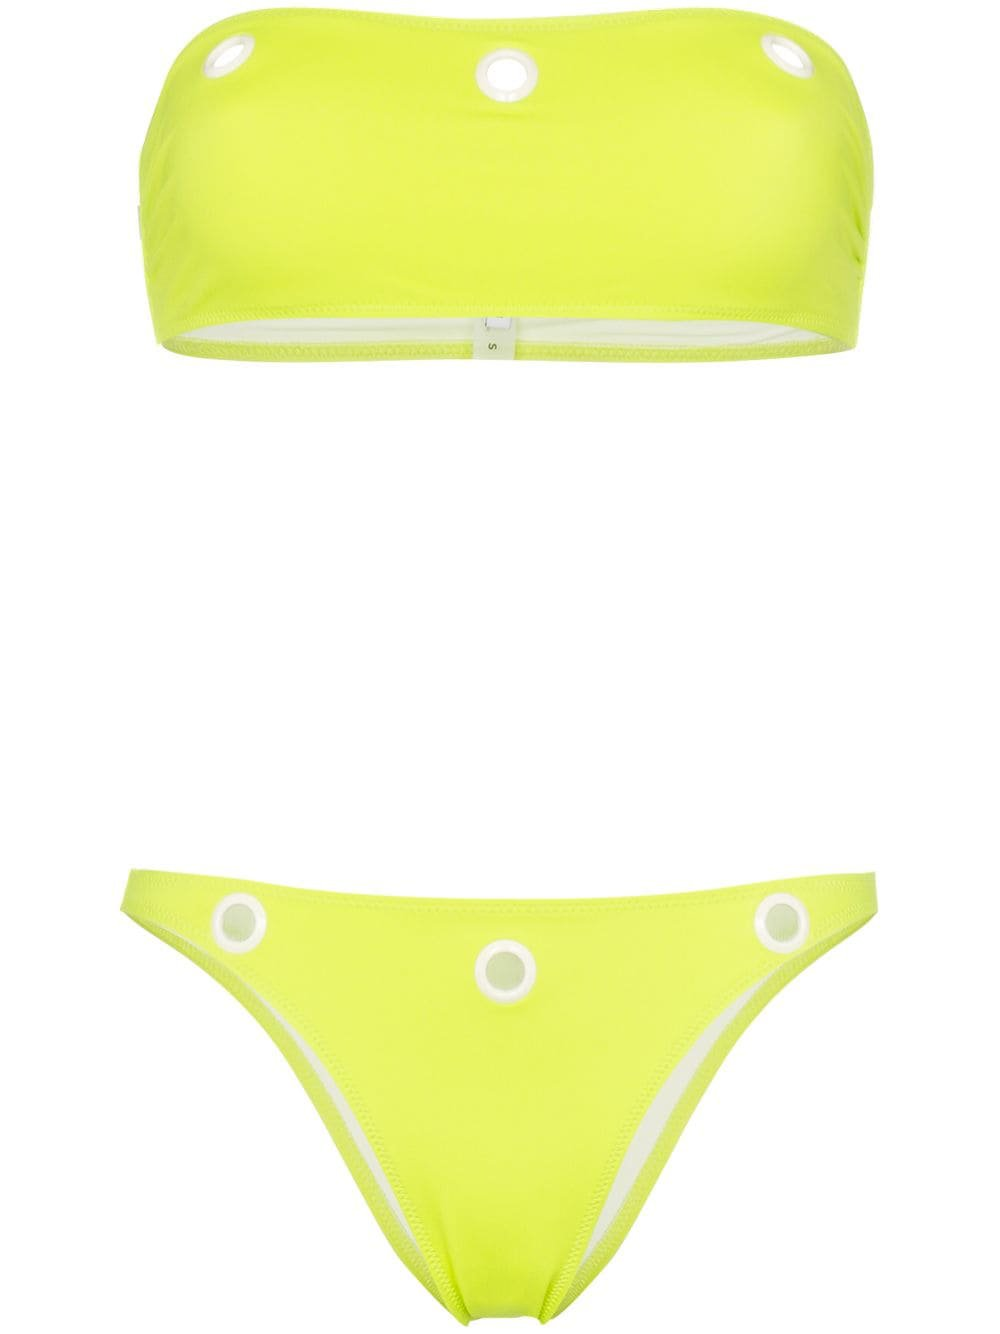 Solid & Striped Annabelle eyelet detail bikini $170 - Buy Online - Mobile Friendly, Fast Delivery, Price